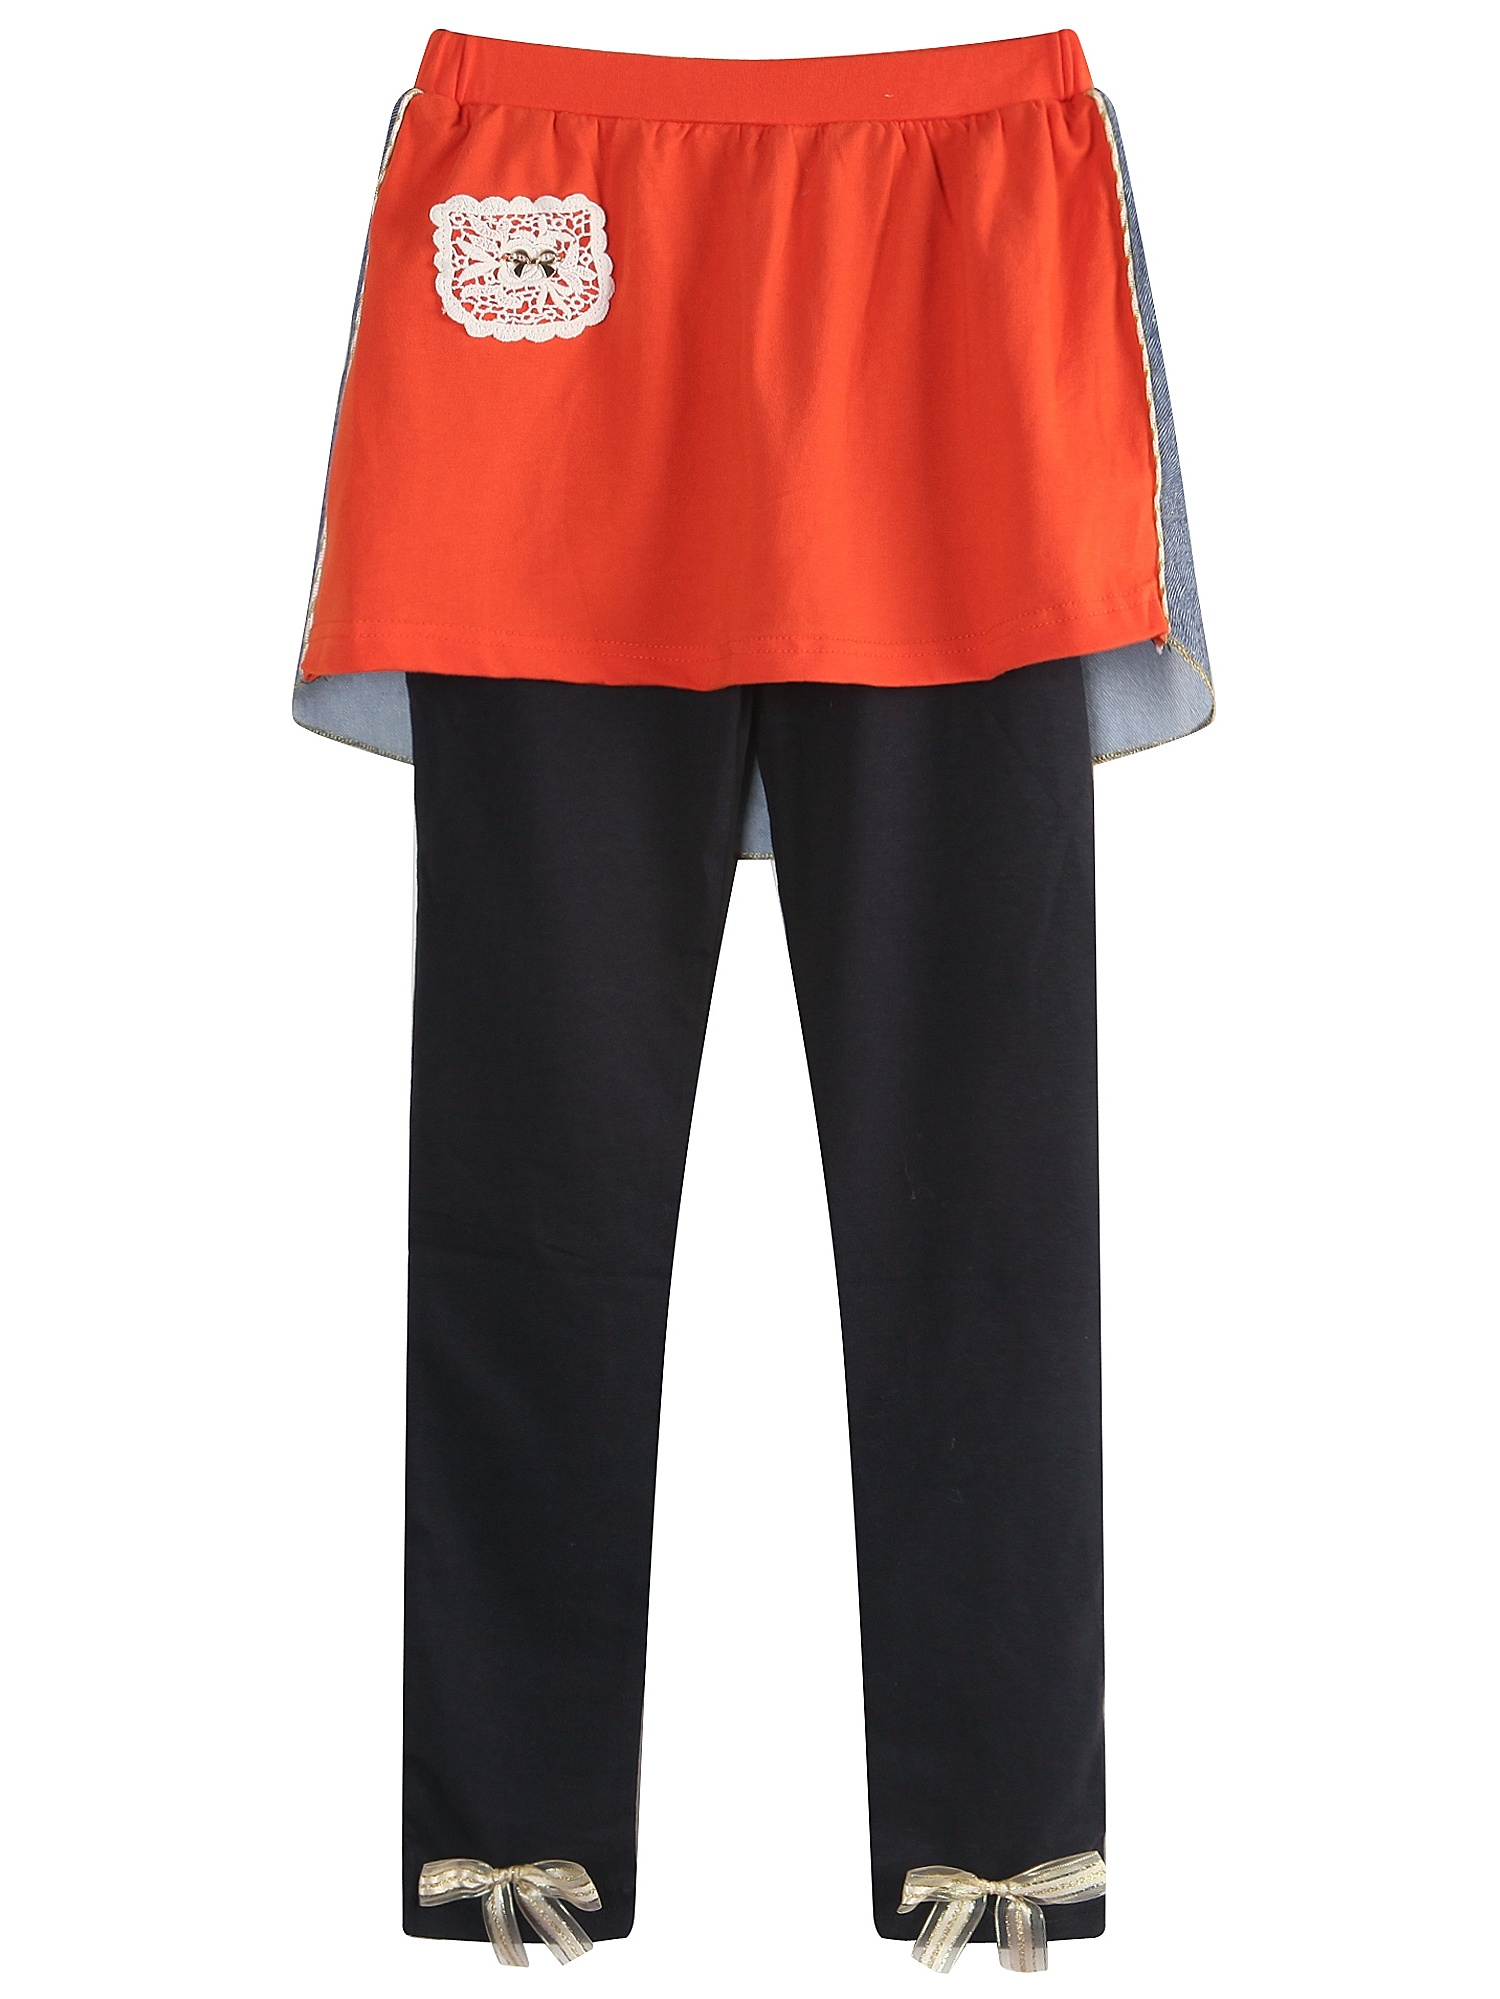 Richie House Girls' Knit Leggings with Contrasting Skirt RH1652